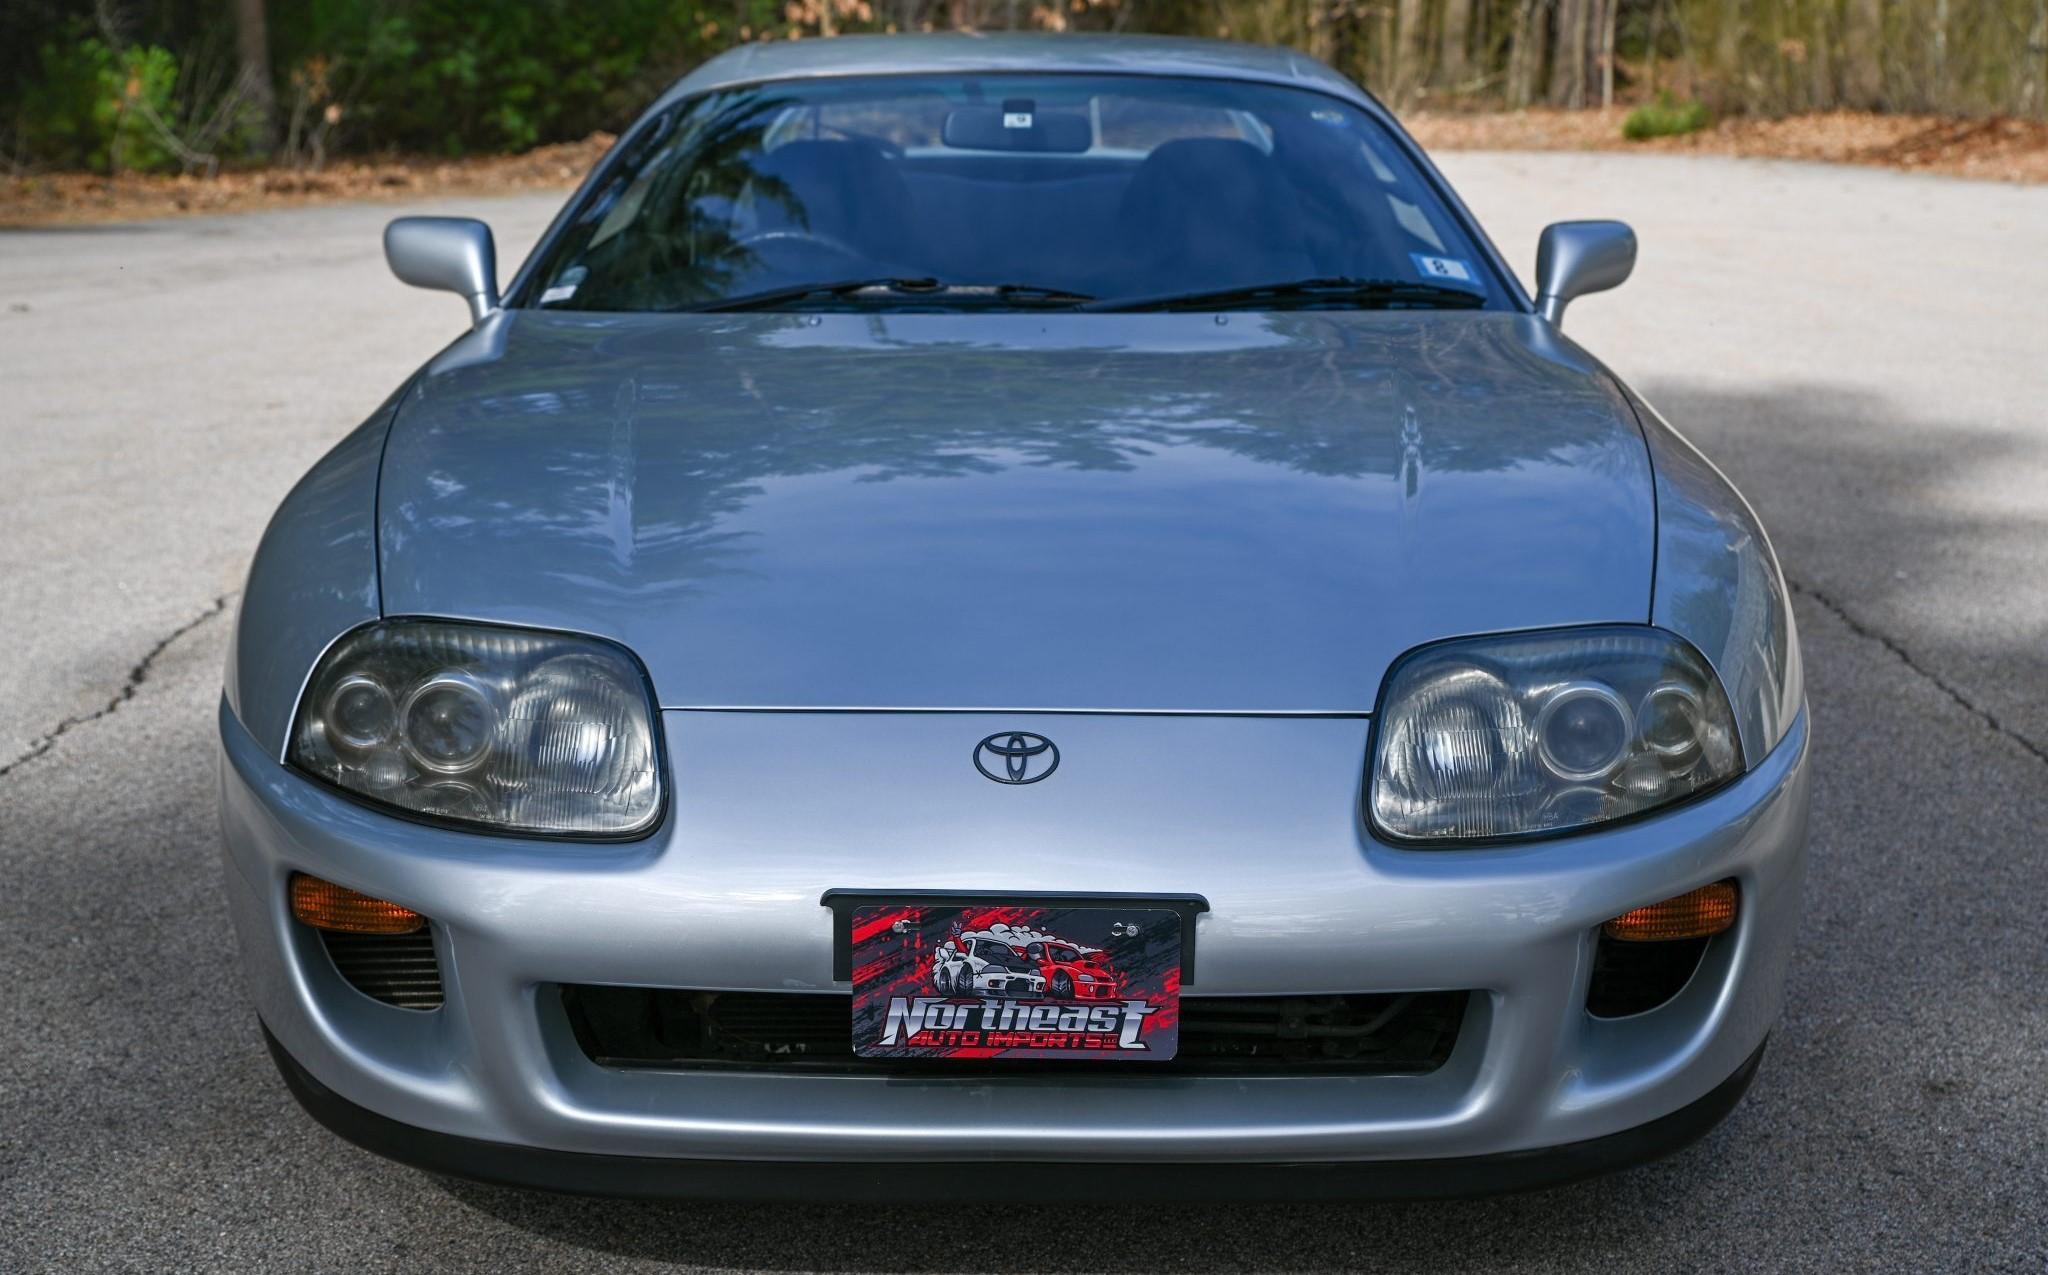 The Toyota RZ Front View Closeup